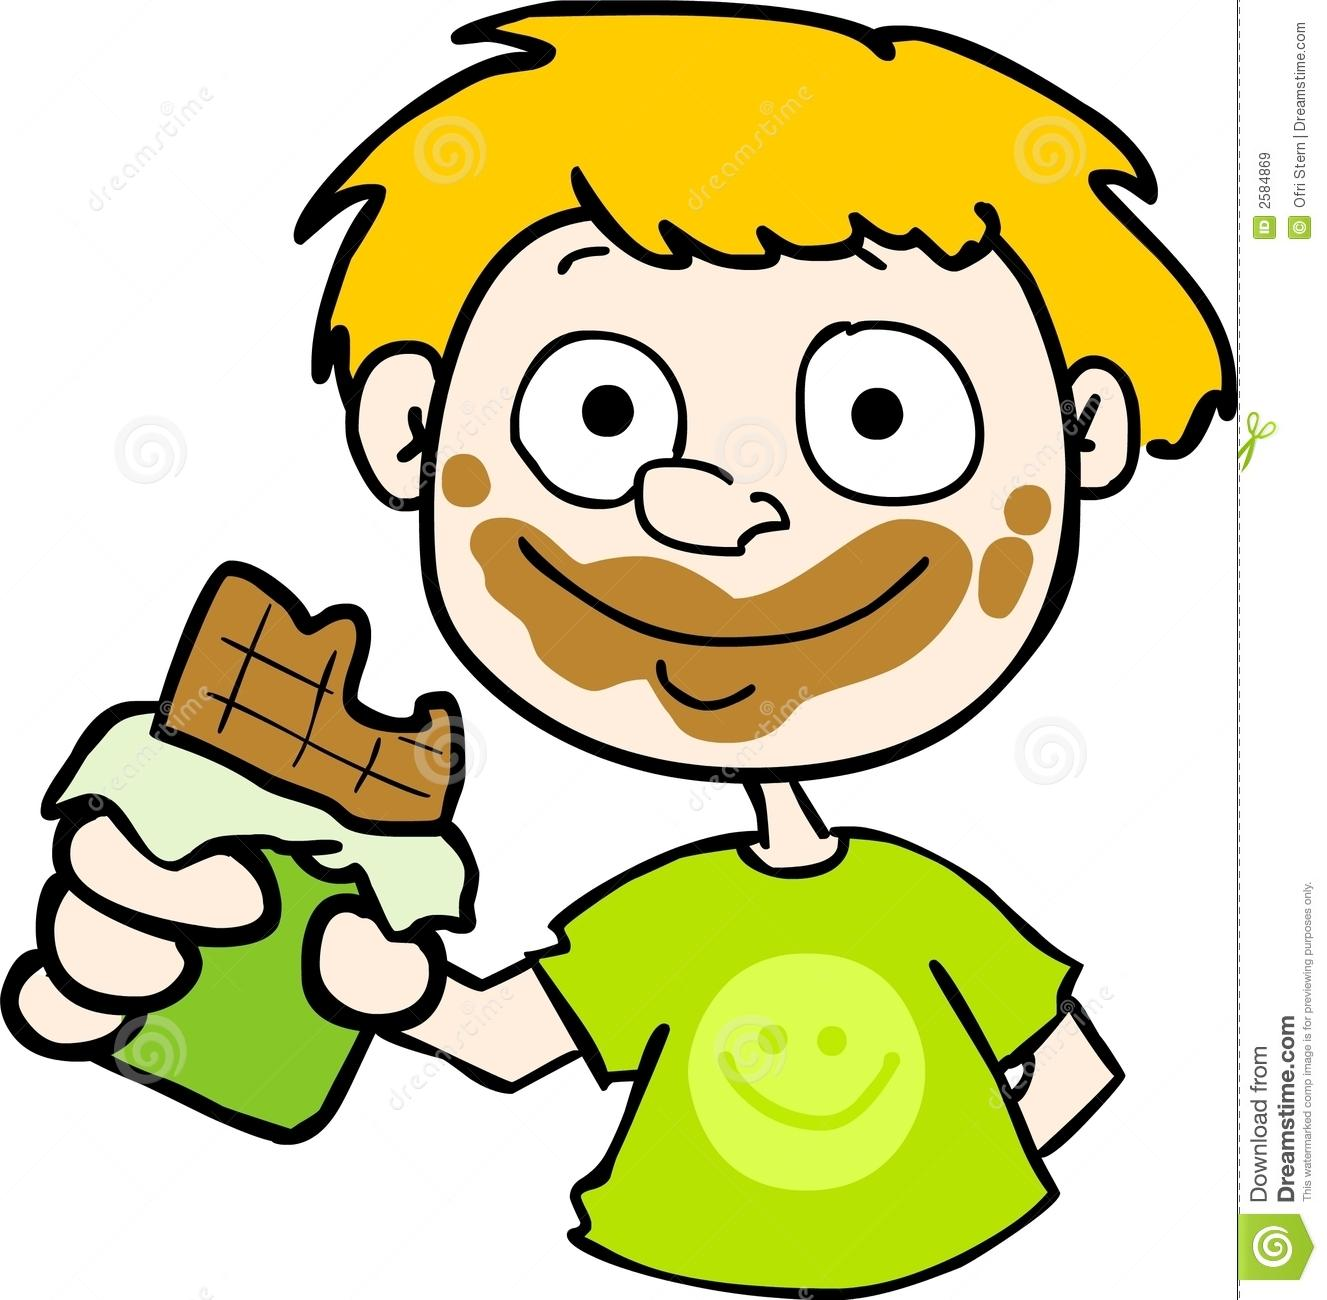 Child eating free download. Chocolate clipart kid